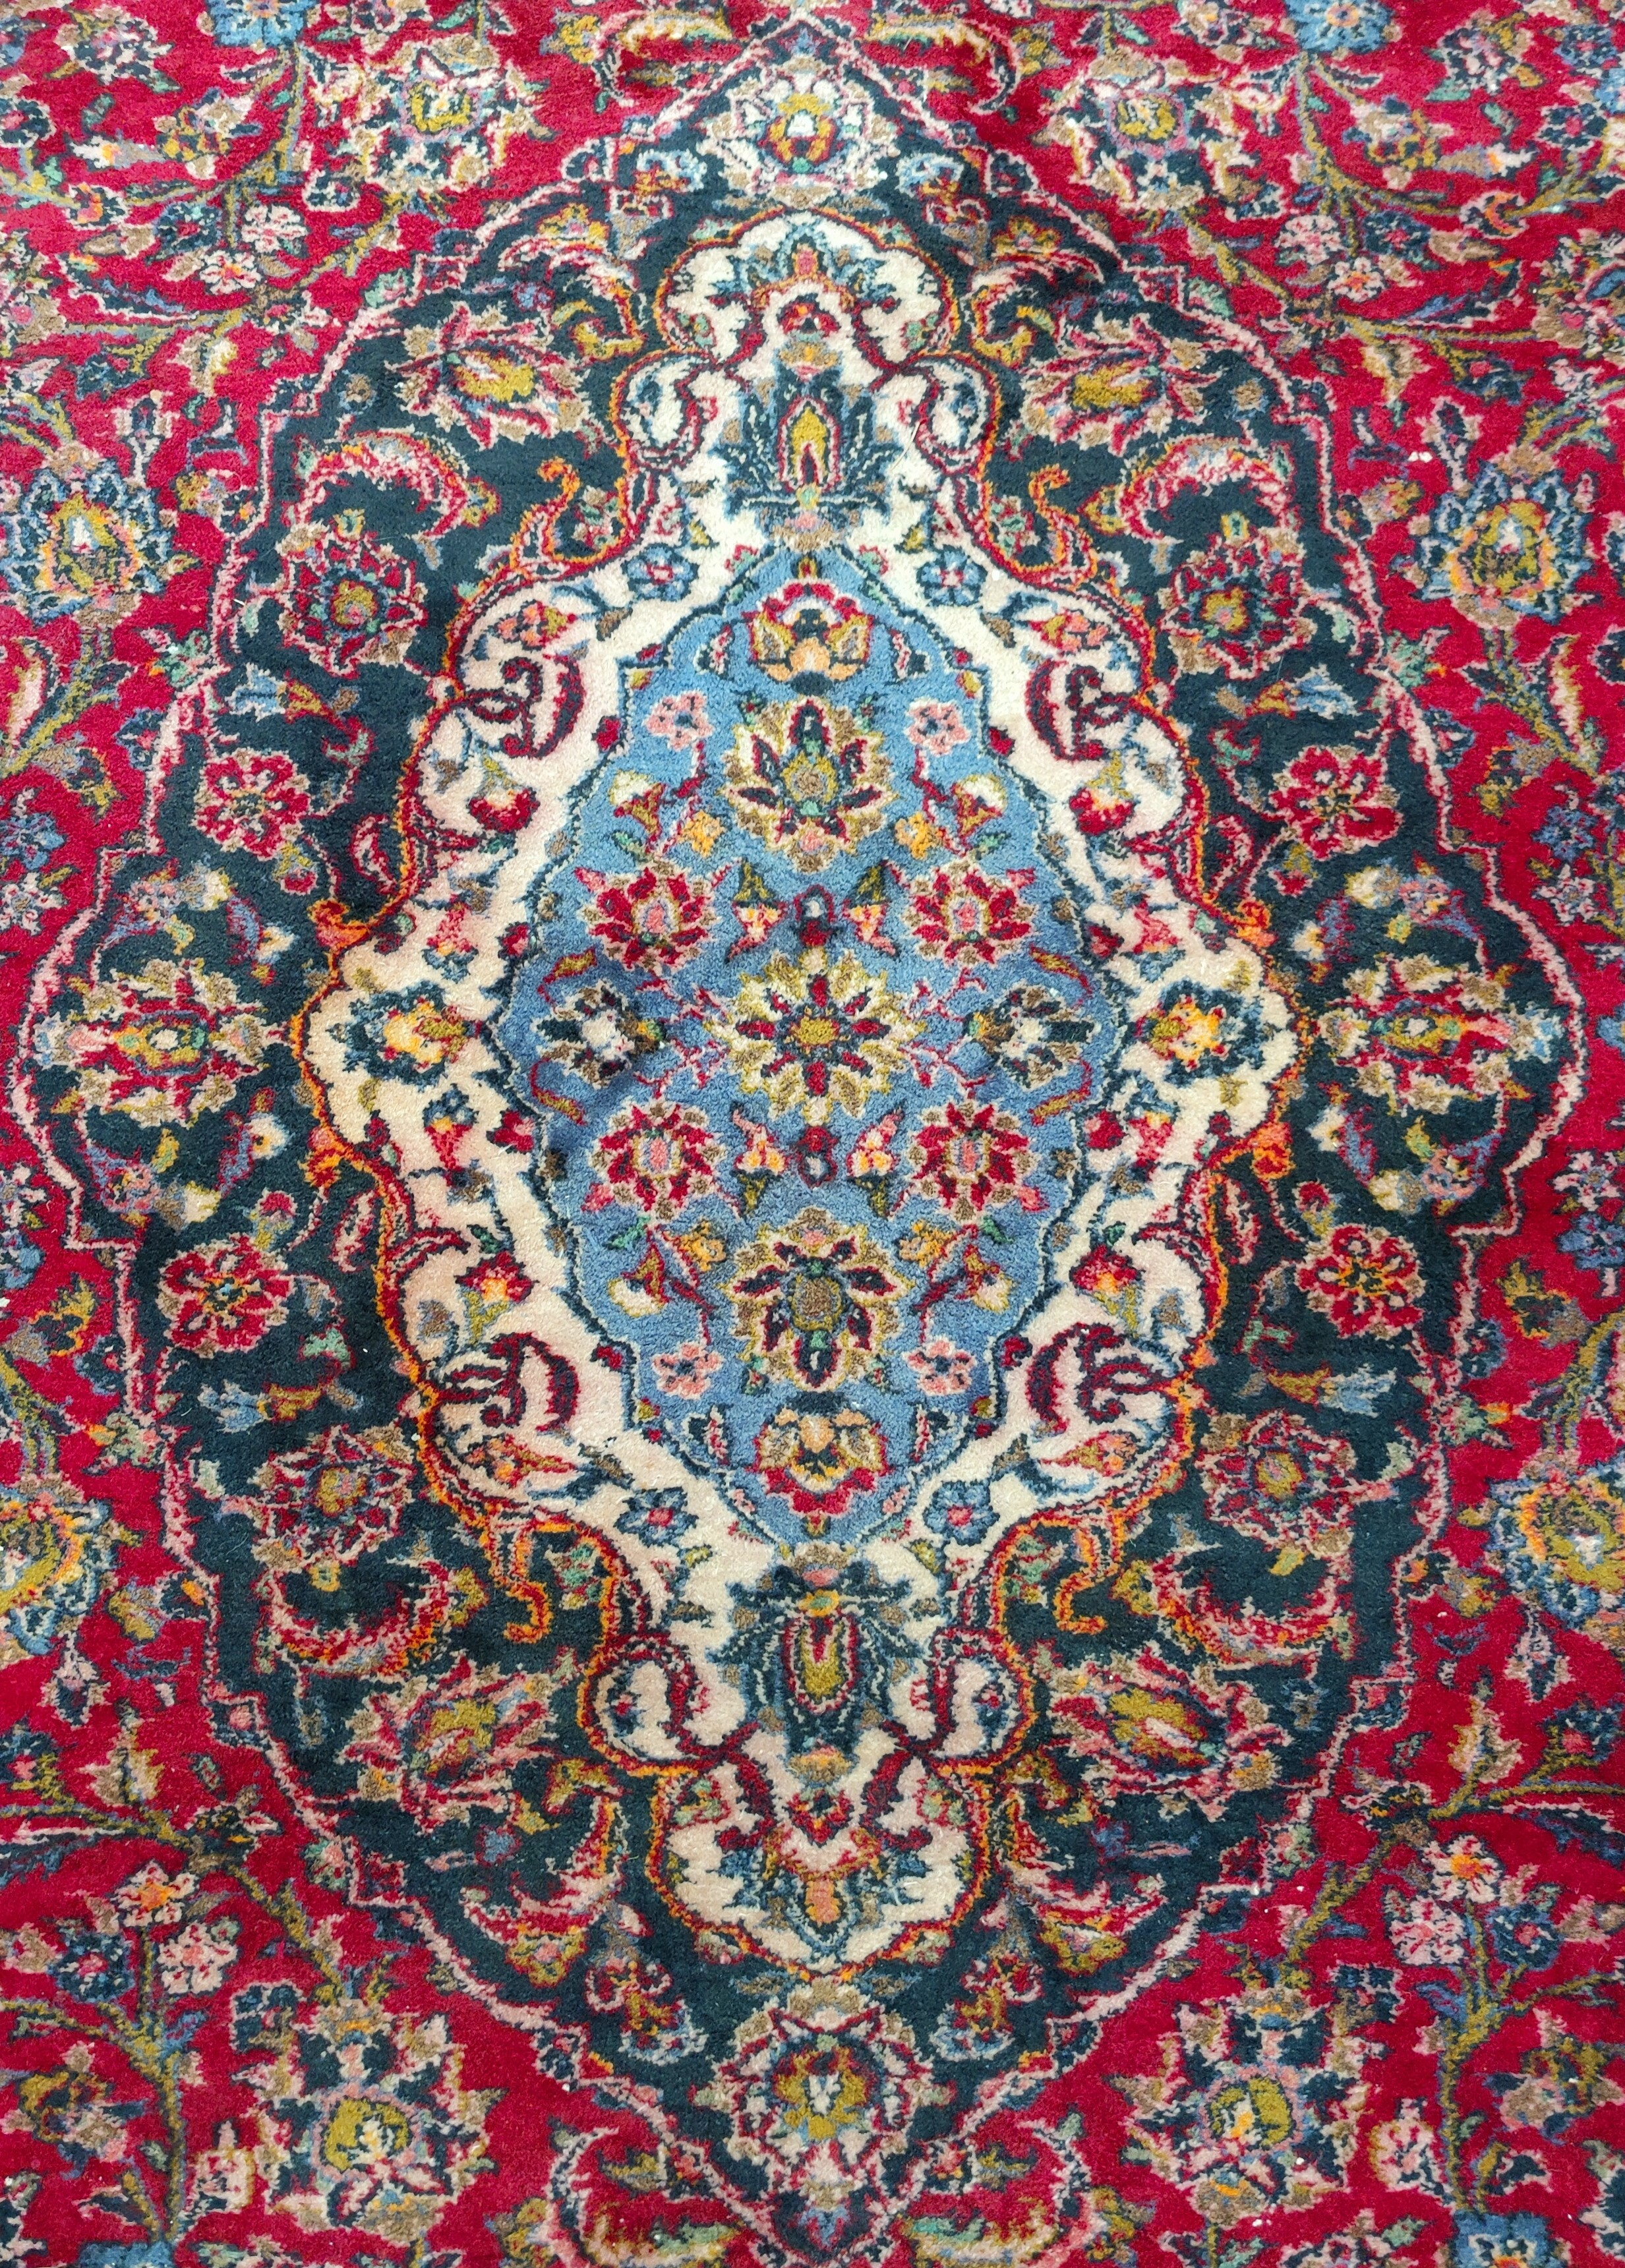 A mid 20th century Turkoman carpet, floral motifs on red ground multi-coloured, 9.5' x 12.5' approx - Image 3 of 4